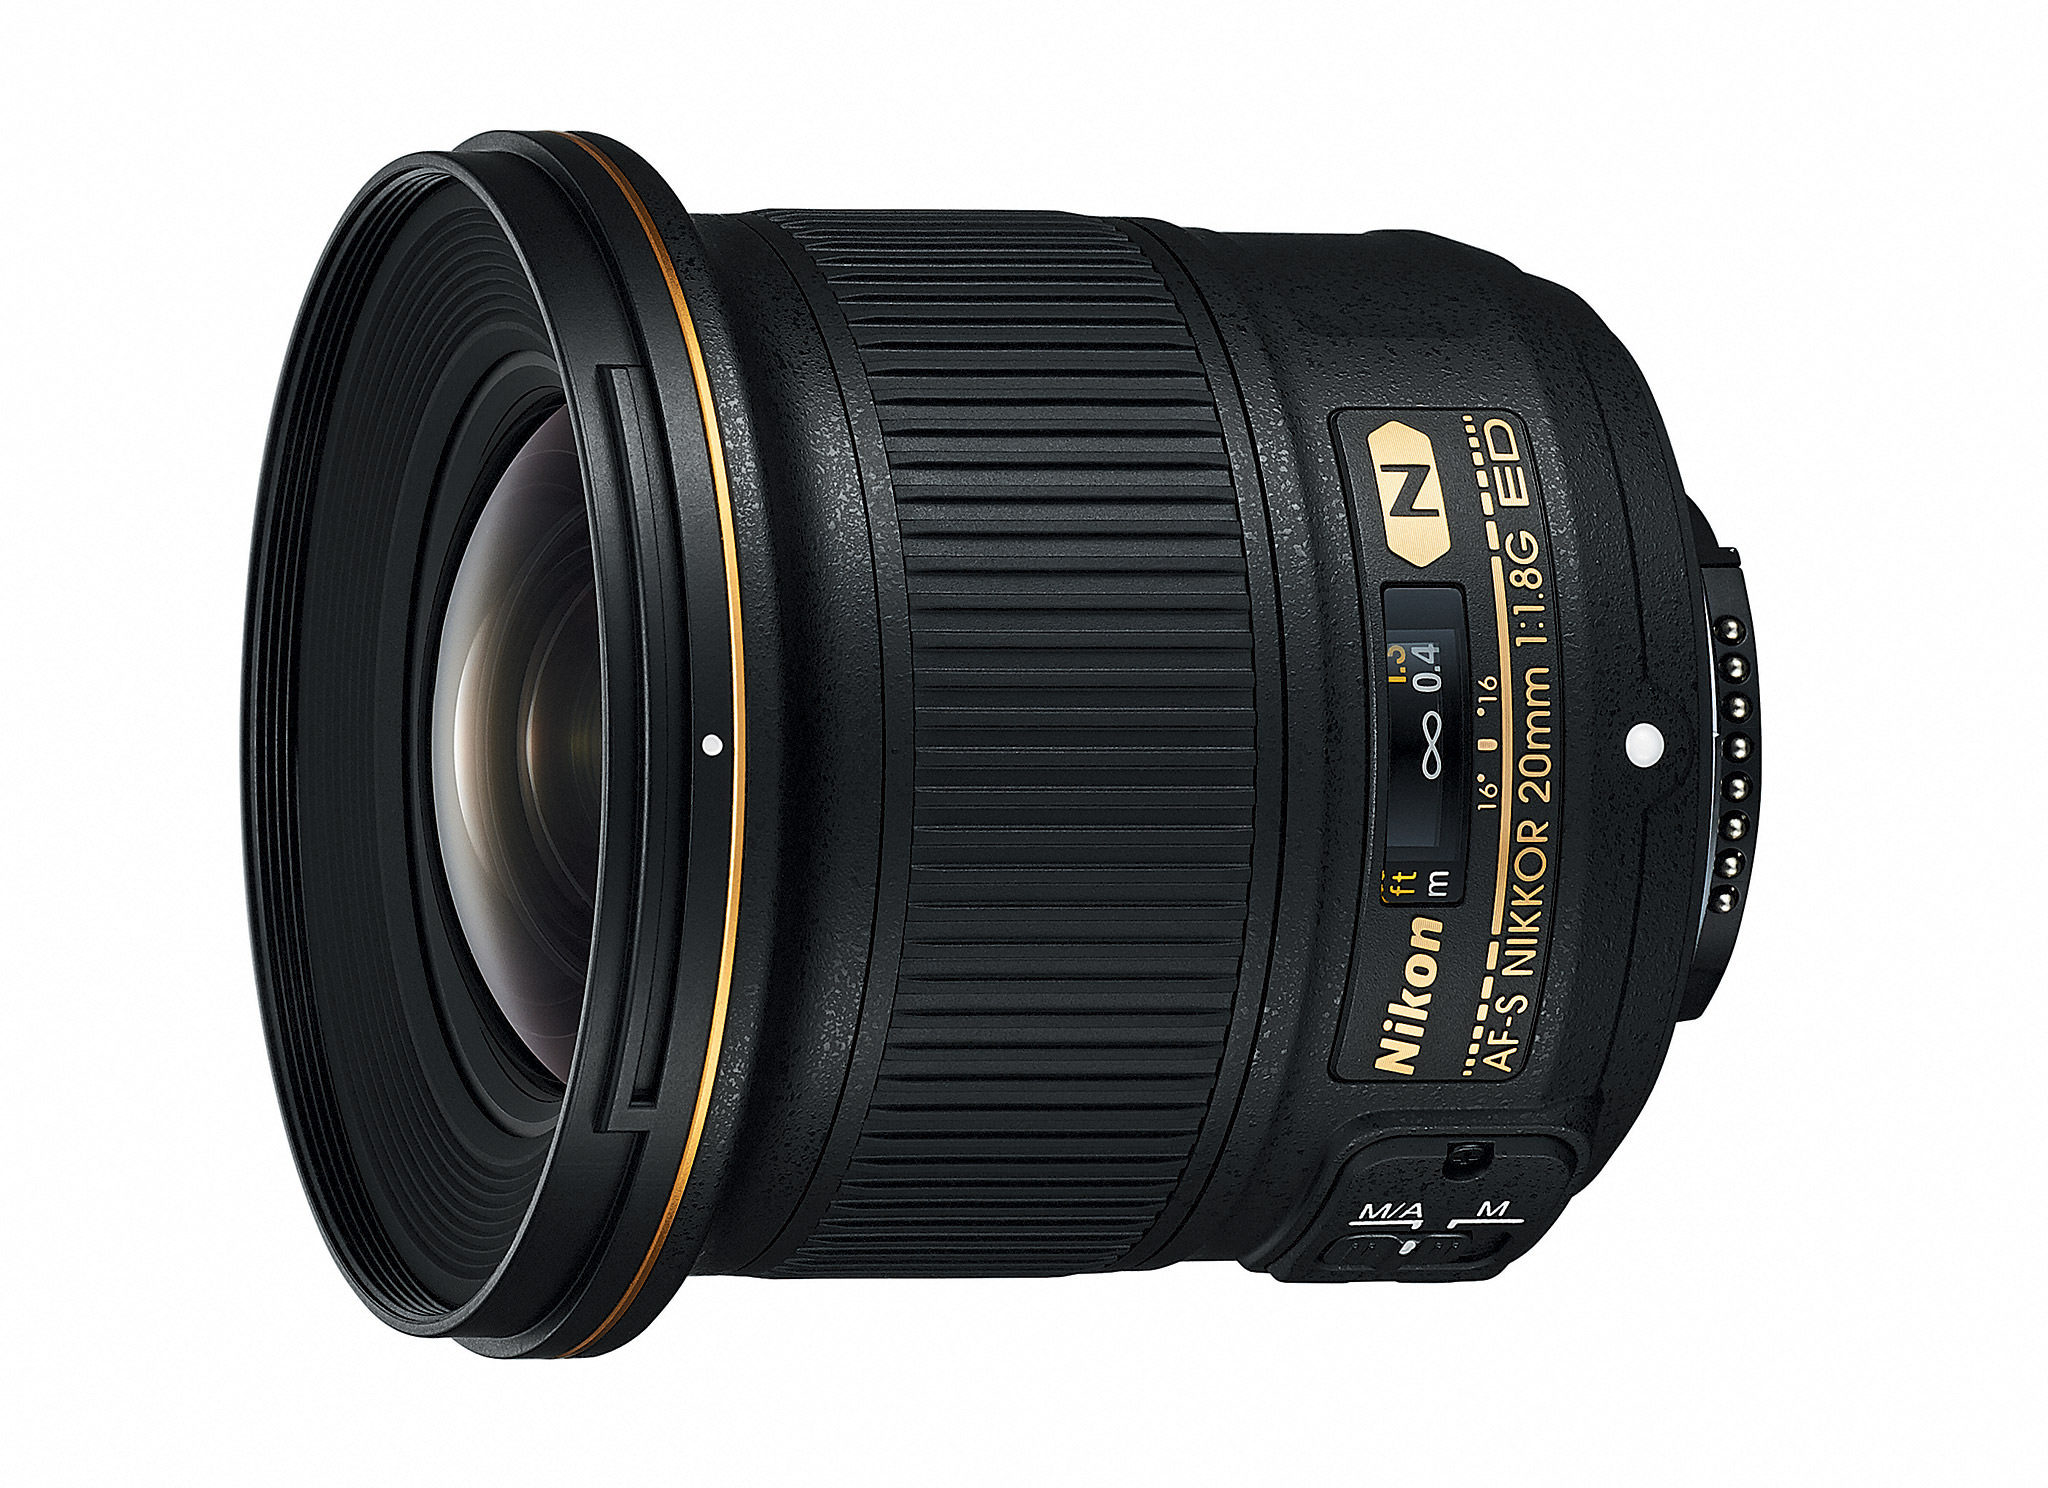 Nikon 20mm f/1 8G ED Review - Reader Comments (Page 6 of 6)